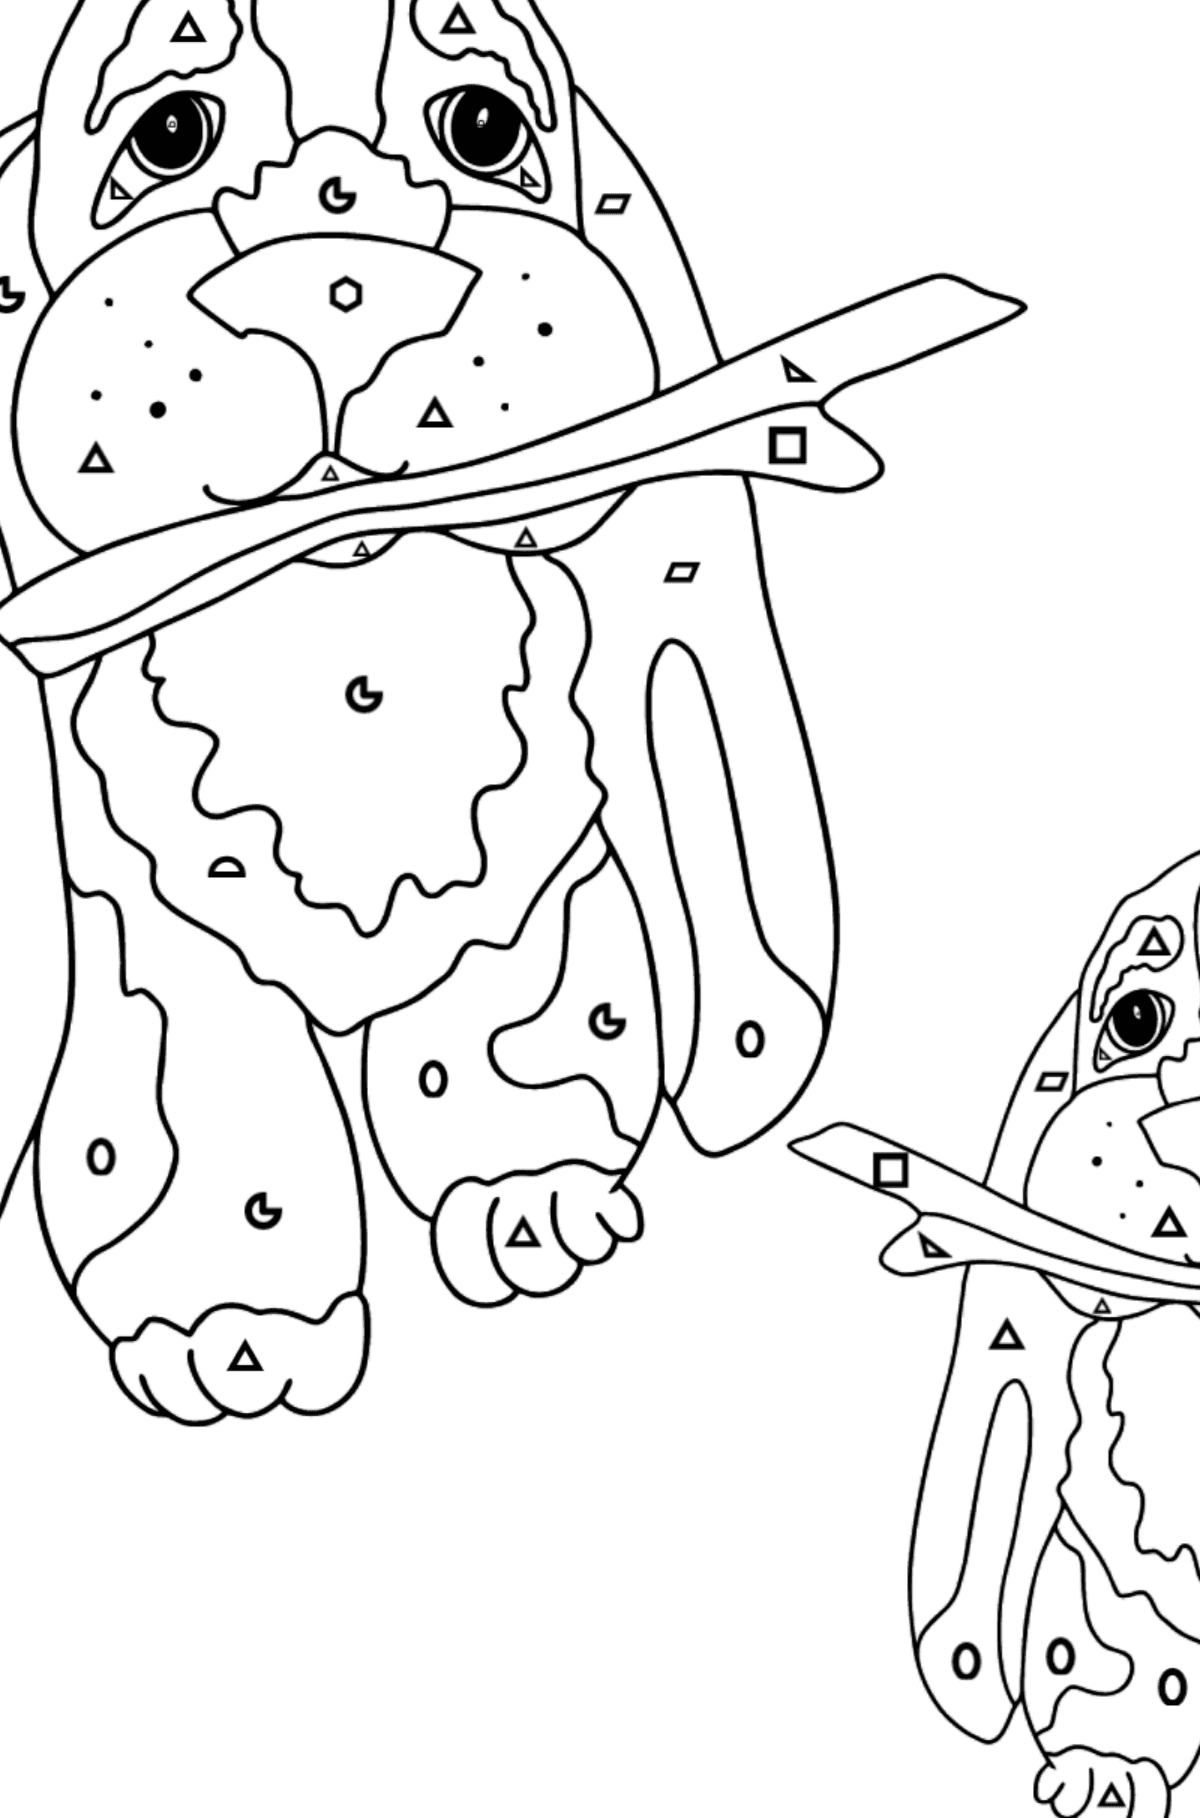 Coloring Page - Two Dogs are Playing with Sticks - Coloring by Geometric Shapes for Kids